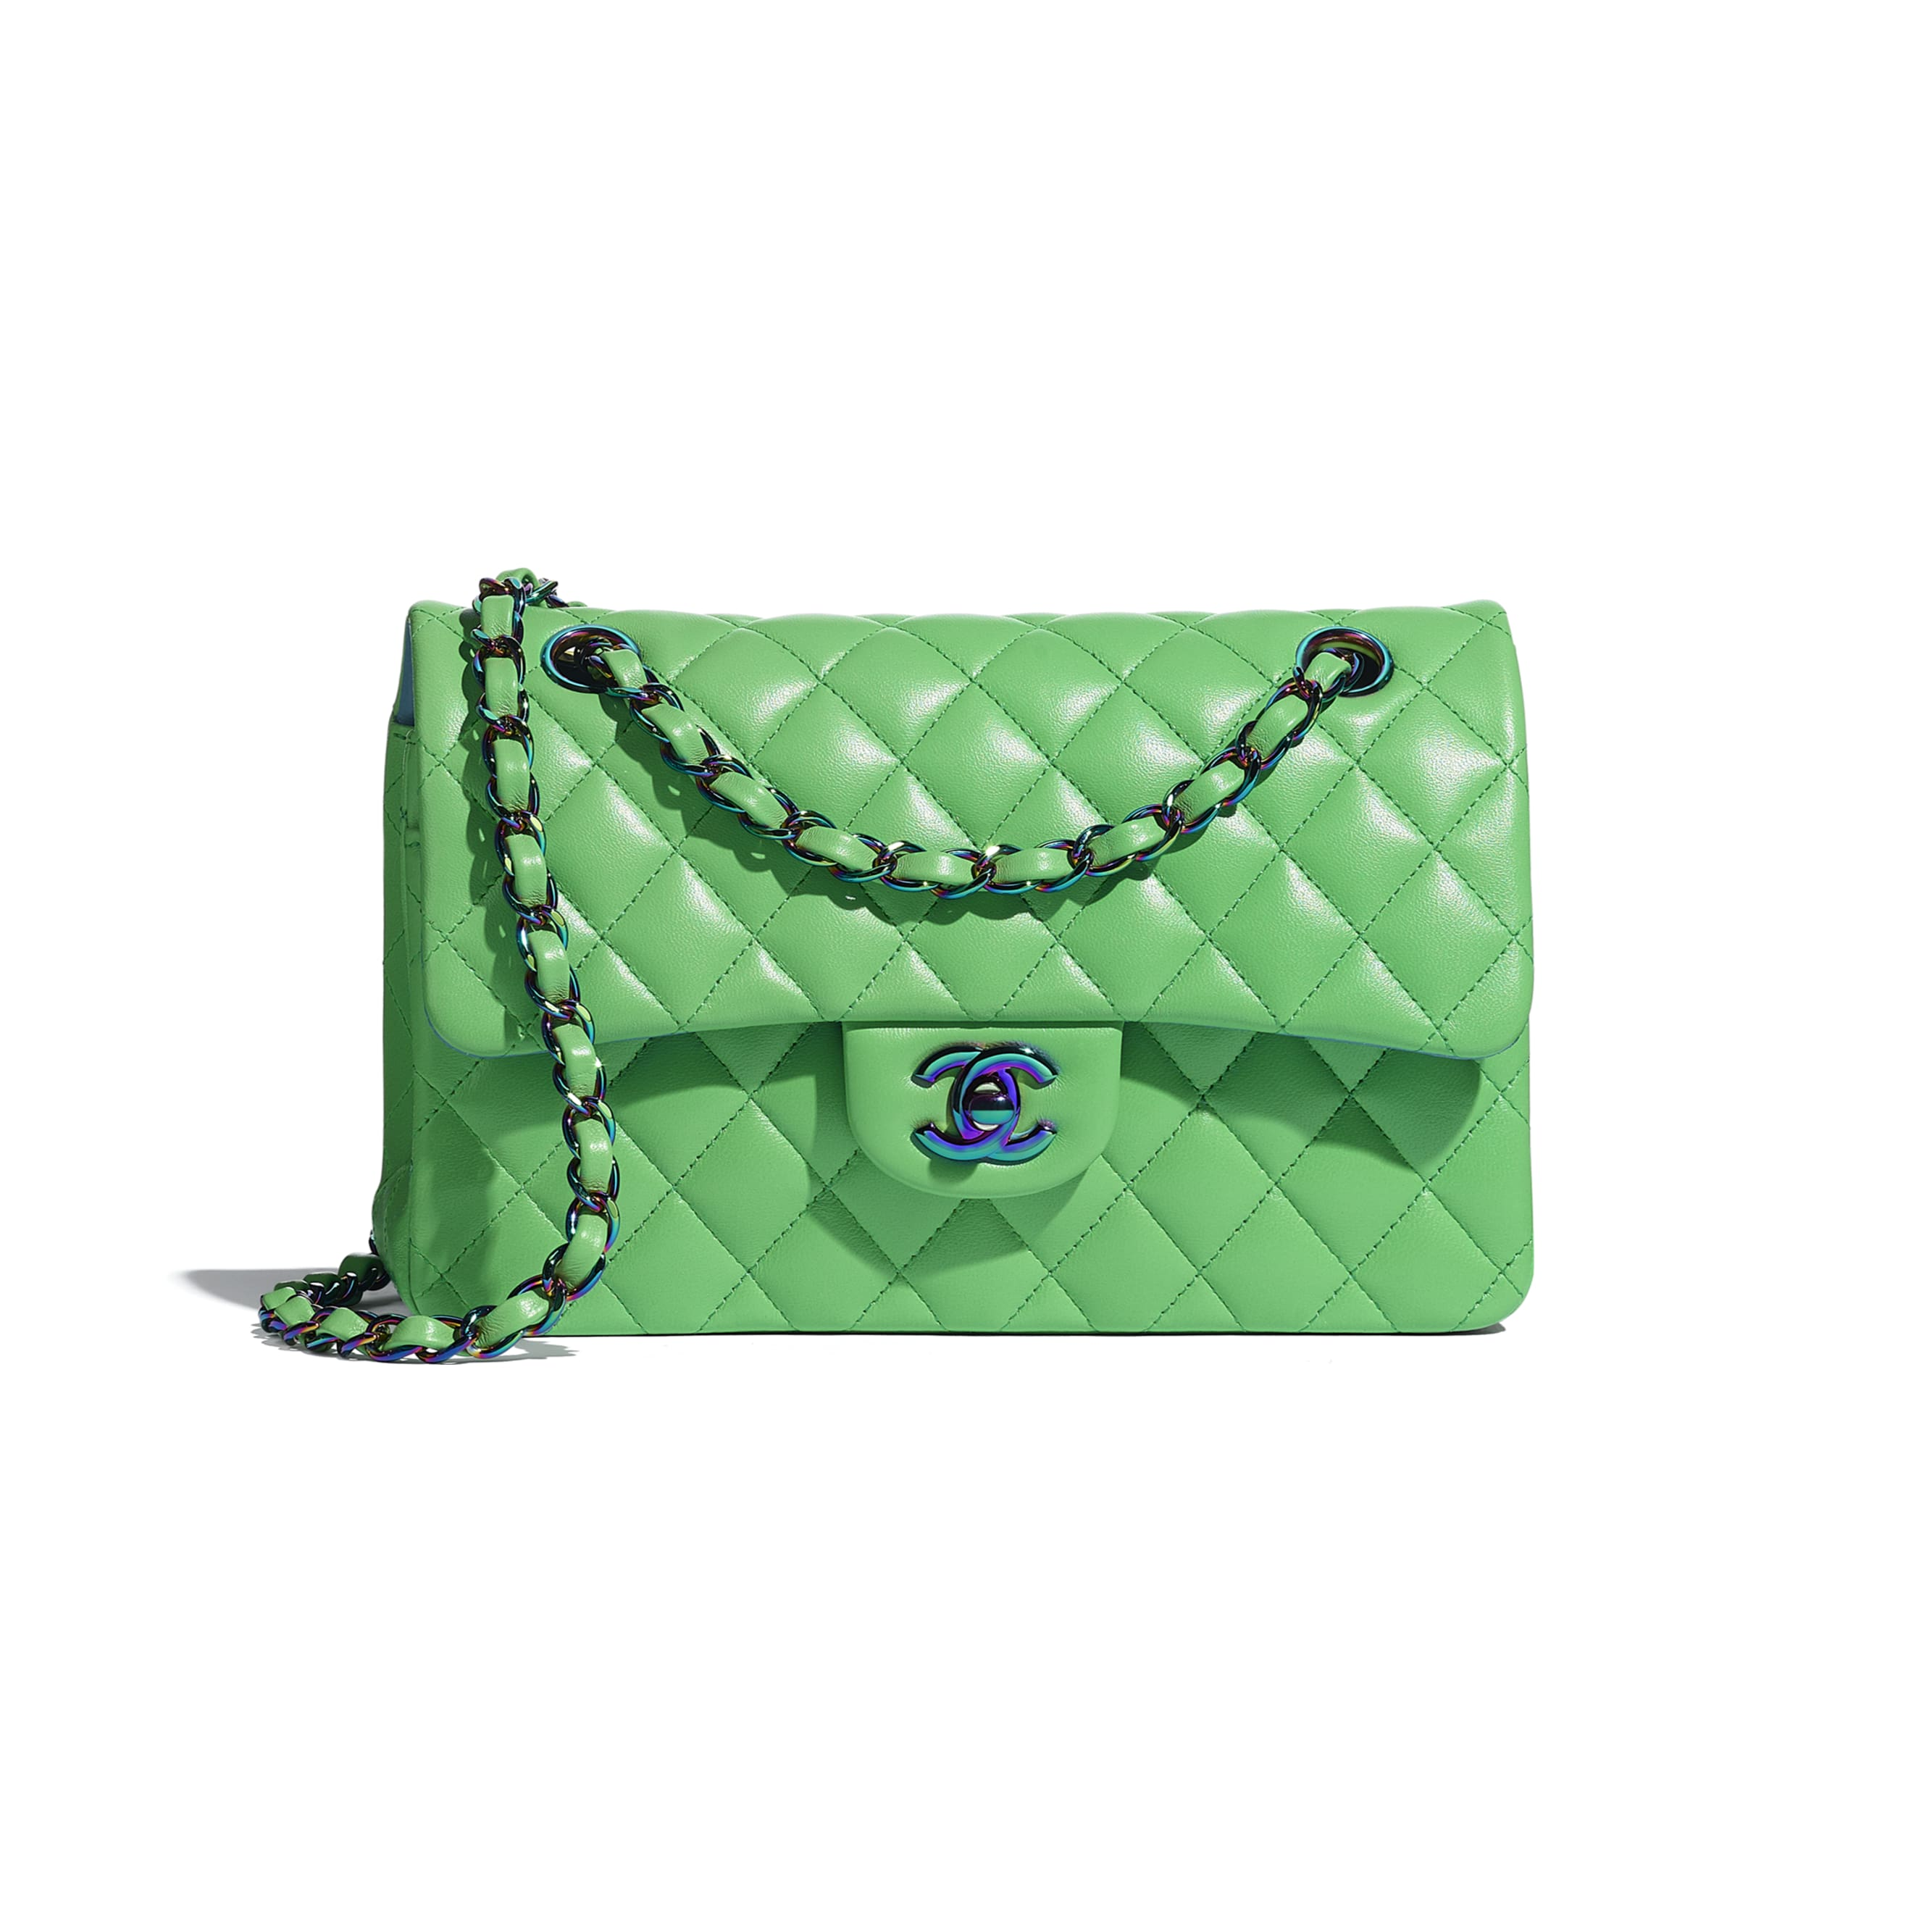 Small Classic Handbag - Green - Lambskin & Rainbow Metal - CHANEL - Default view - see standard sized version